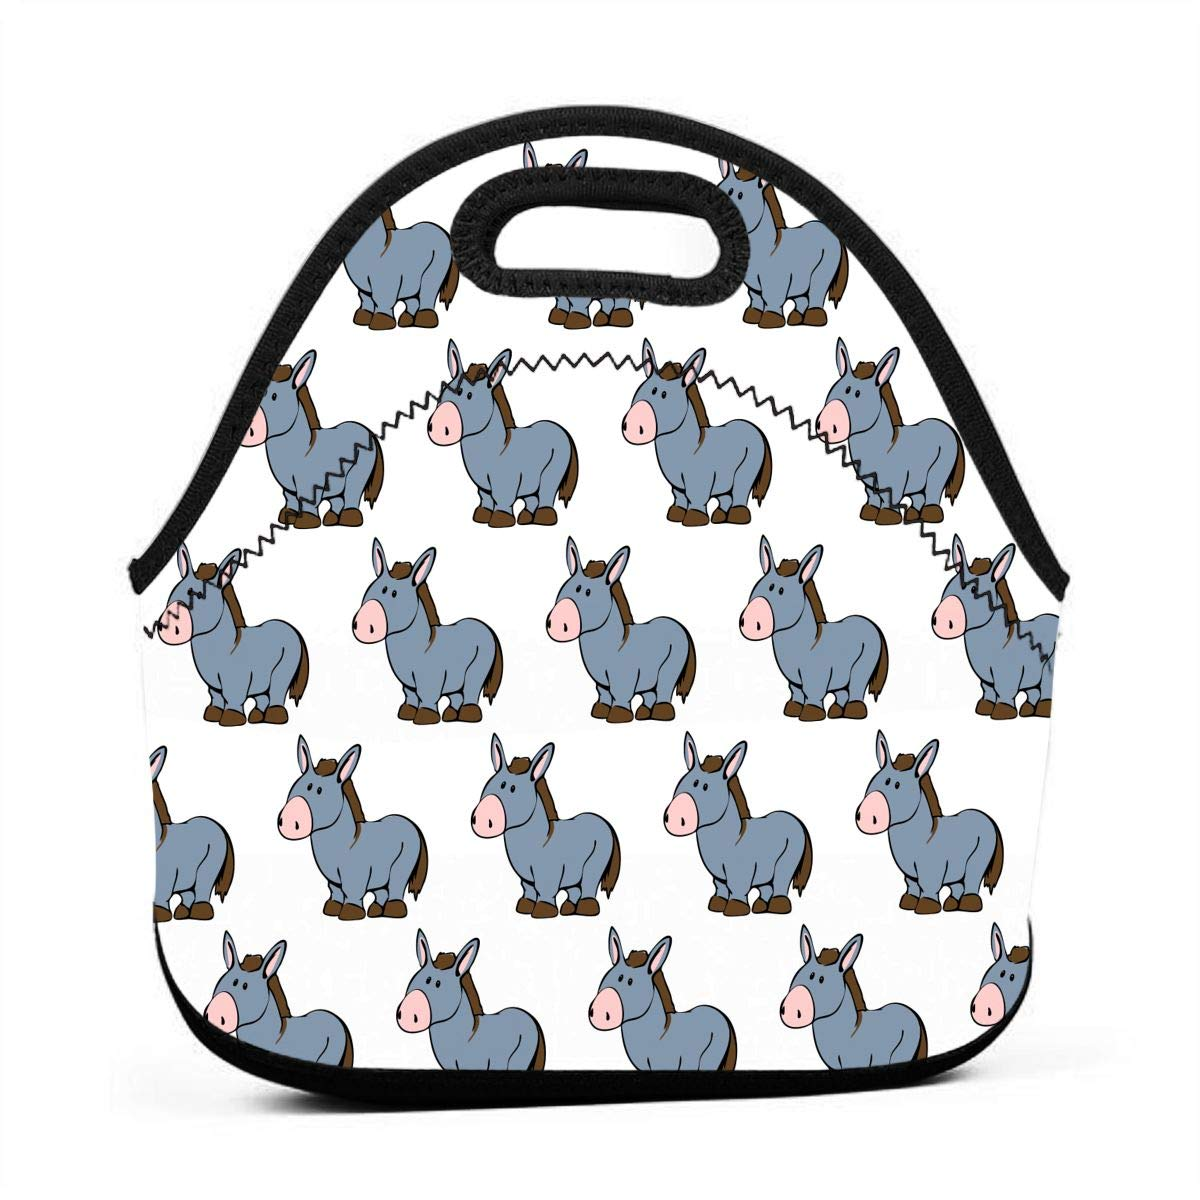 Free clipart cute hound wine & cheese royalty free Amazon.com: Lunchbox - Cute Horses Gourmet Tote Pouch Organizer for ... royalty free